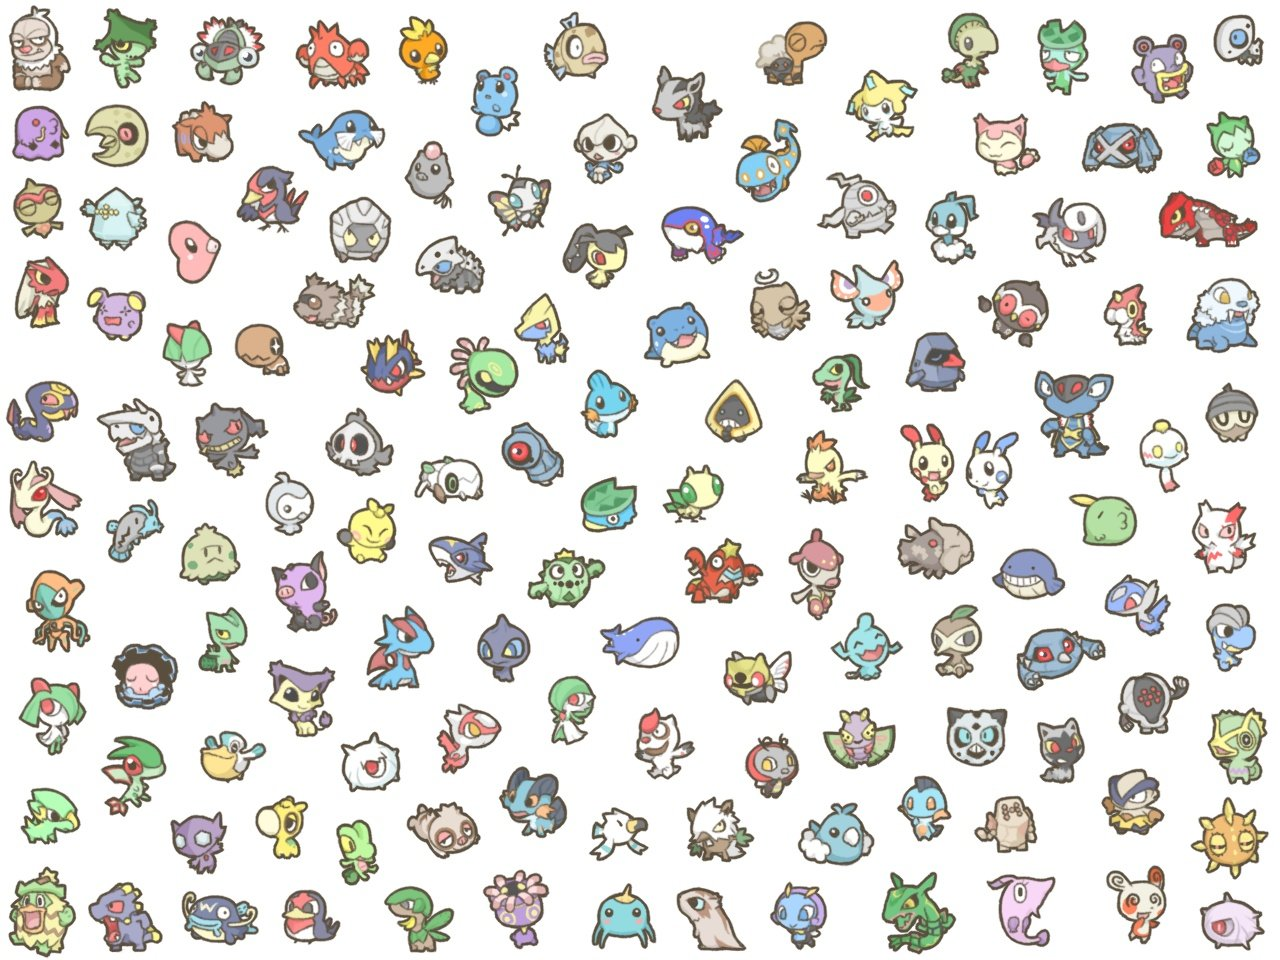 Pokedex O the tales we tell 1280x960